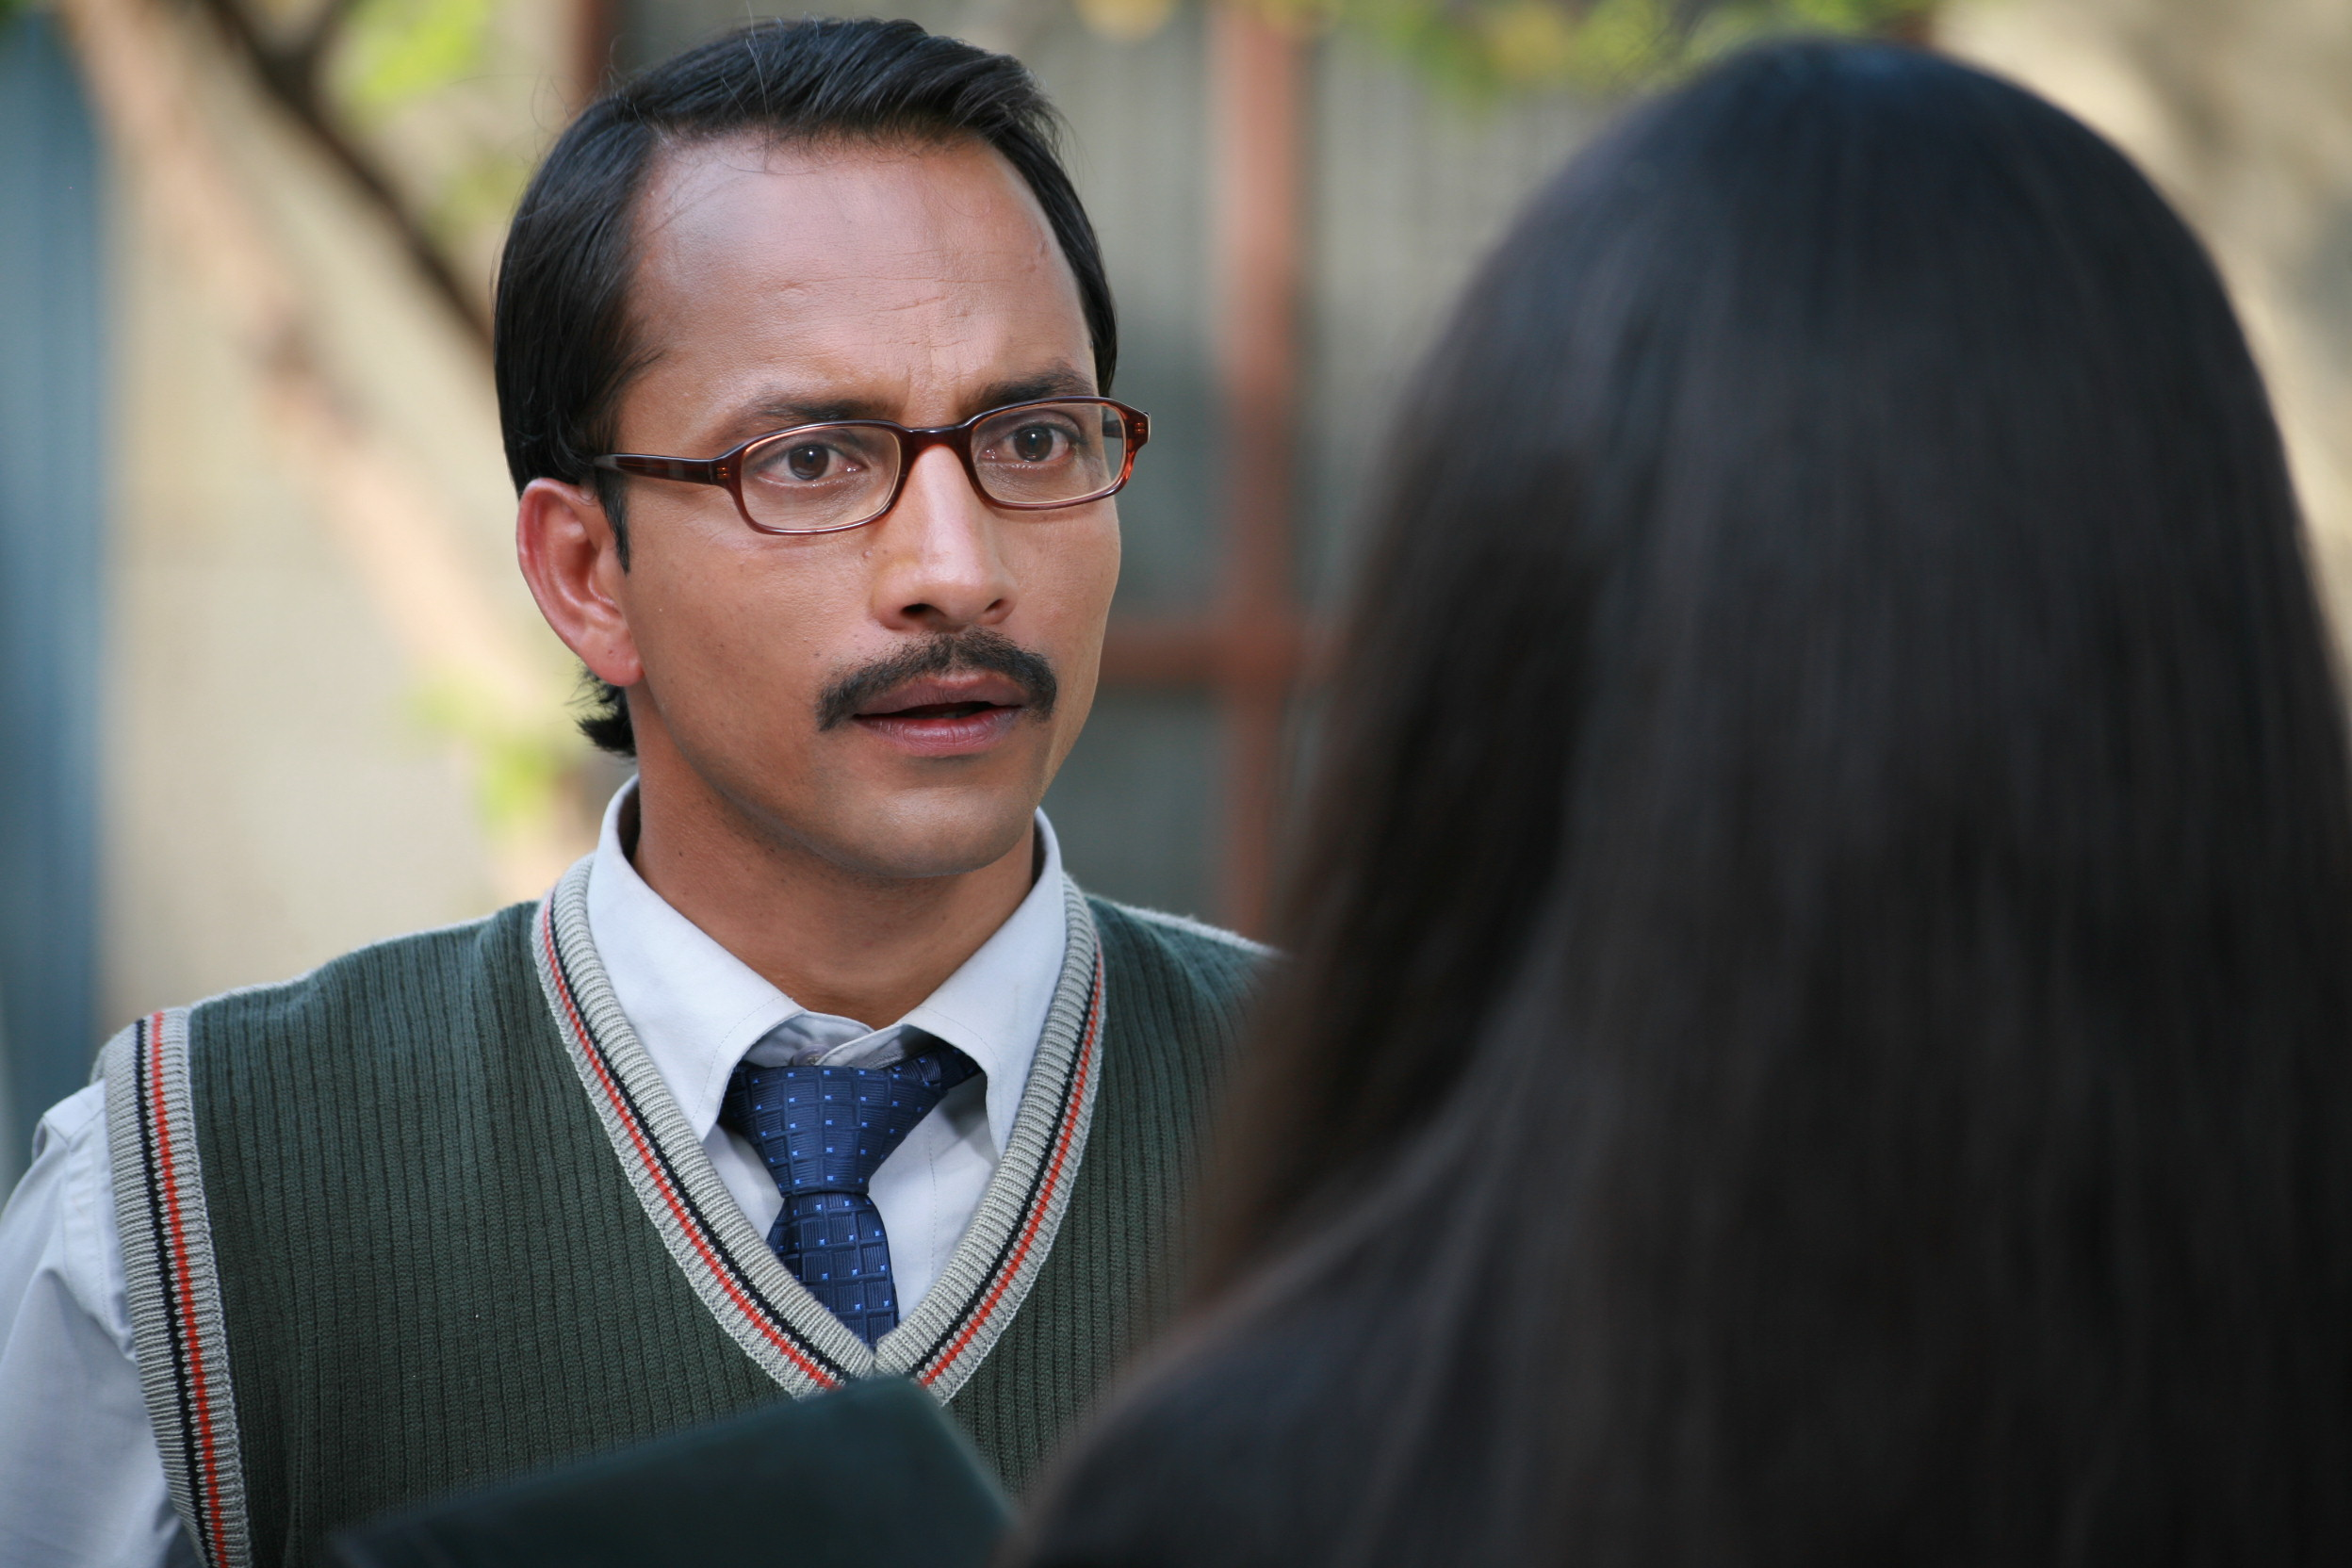 deepak dobriyal new moviedeepak dobriyal wife, deepak dobriyal movies, deepak dobriyal movies list, deepak dobriyal height, deepak dobriyal lara bhalla, deepak dobriyal net worth, deepak dobriyal comedy, deepak dobriyal short film, deepak dobriyal imdb, deepak dobriyal pics, deepak dobriyal funny, deepak dobriyal upcoming movies, deepak dobriyal accident, deepak dobriyal garhwali movie, deepak dobriyal biography, deepak dobriyal all movies, deepak dobriyal pahadi movie, deepak dobriyal new movie, deepak dobriyal dialogues, deepak dobriyal twitter